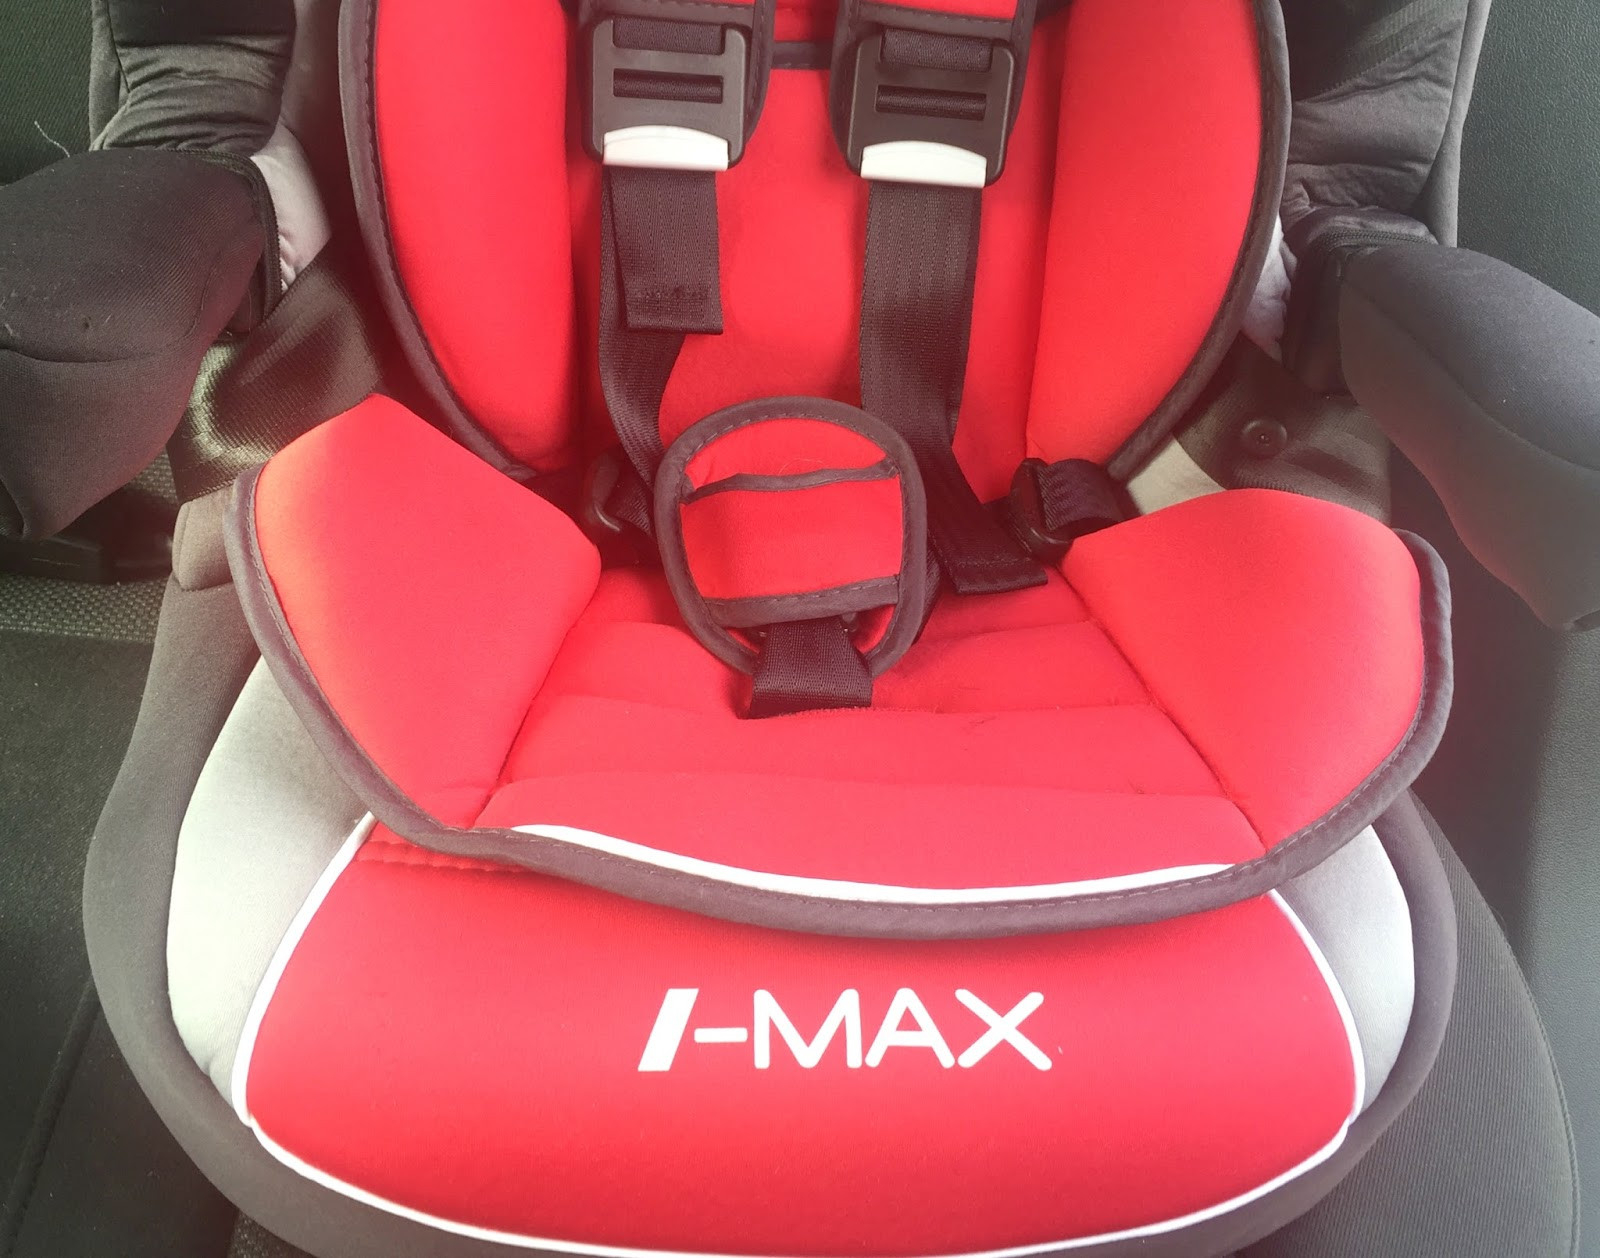 Nania Imax Group    Car Seat Review